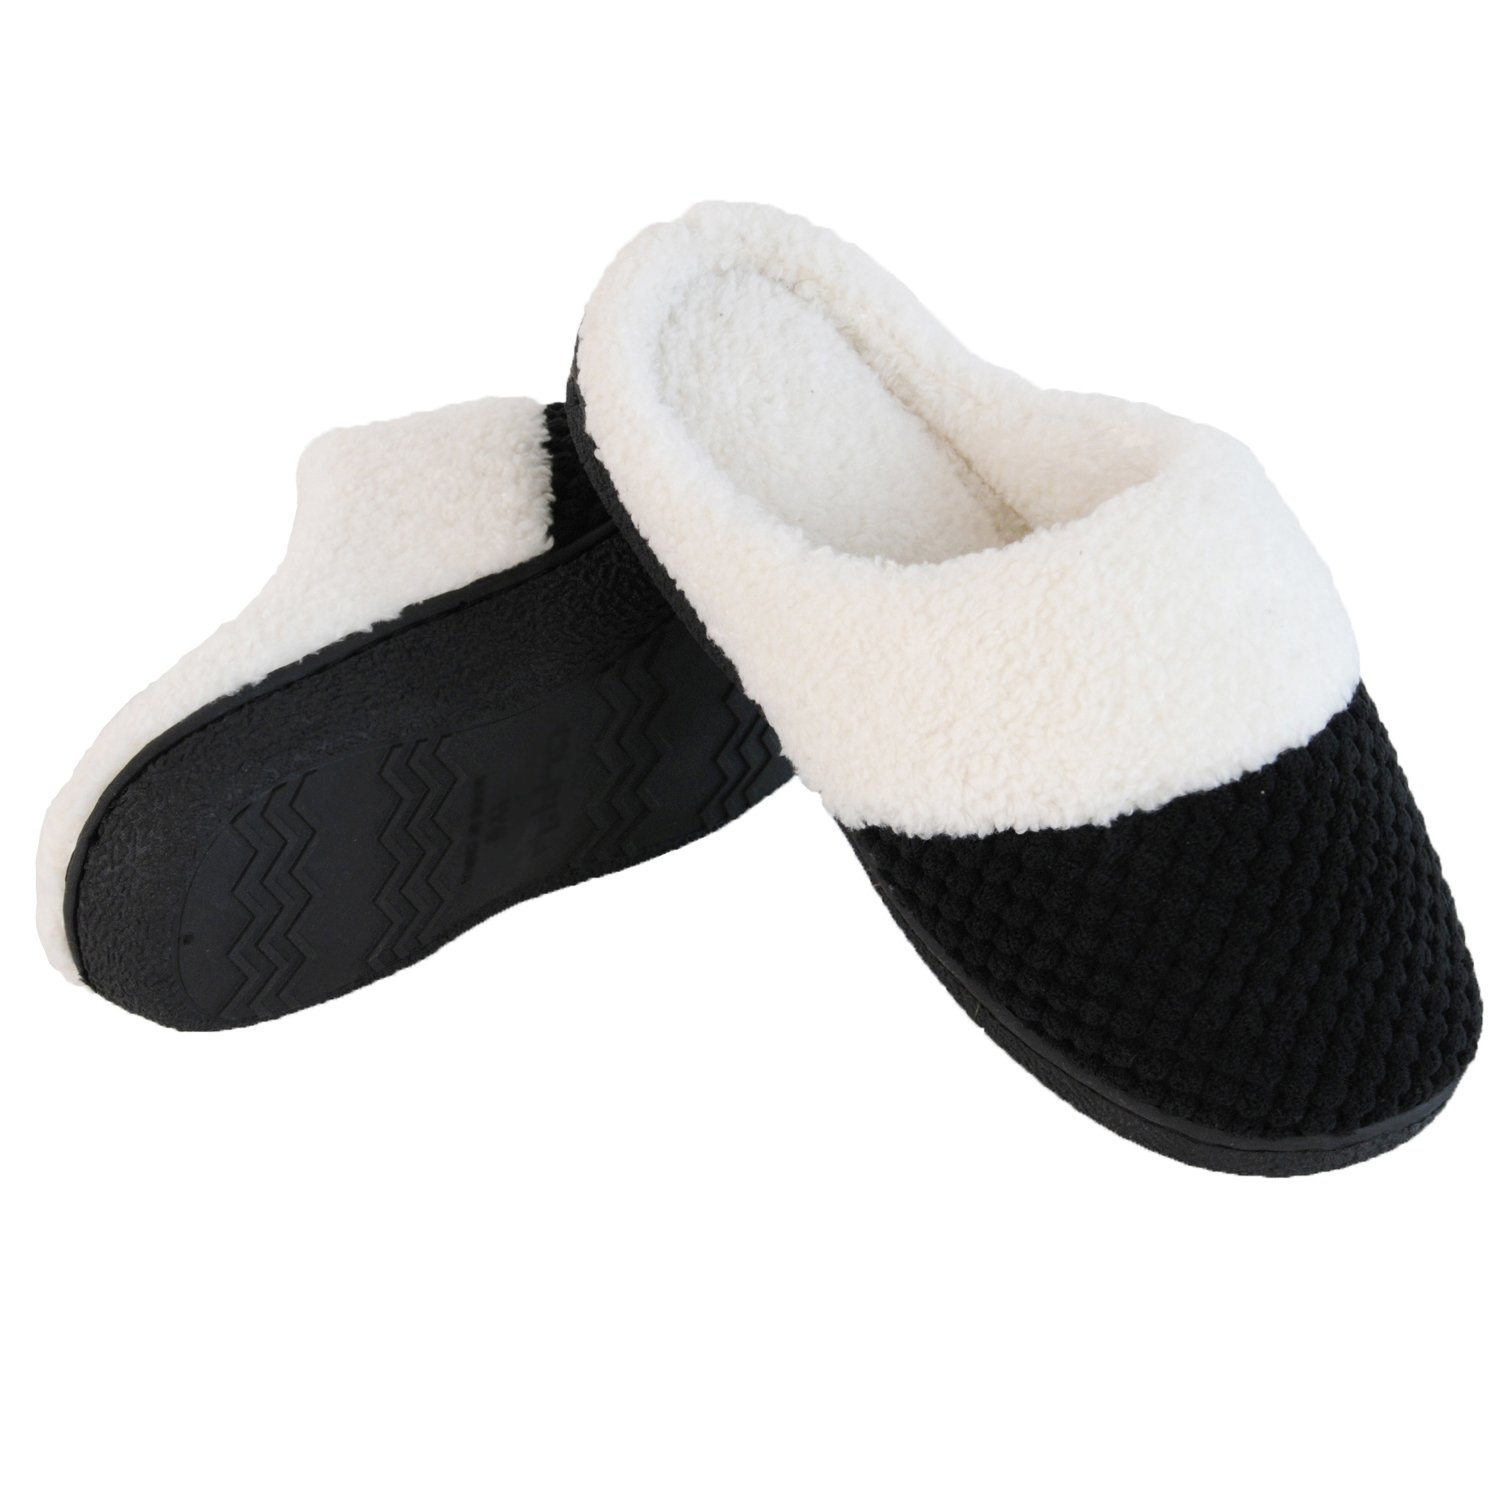 Details about Skechers Memory Foam, Slippers, Soft Insole, New